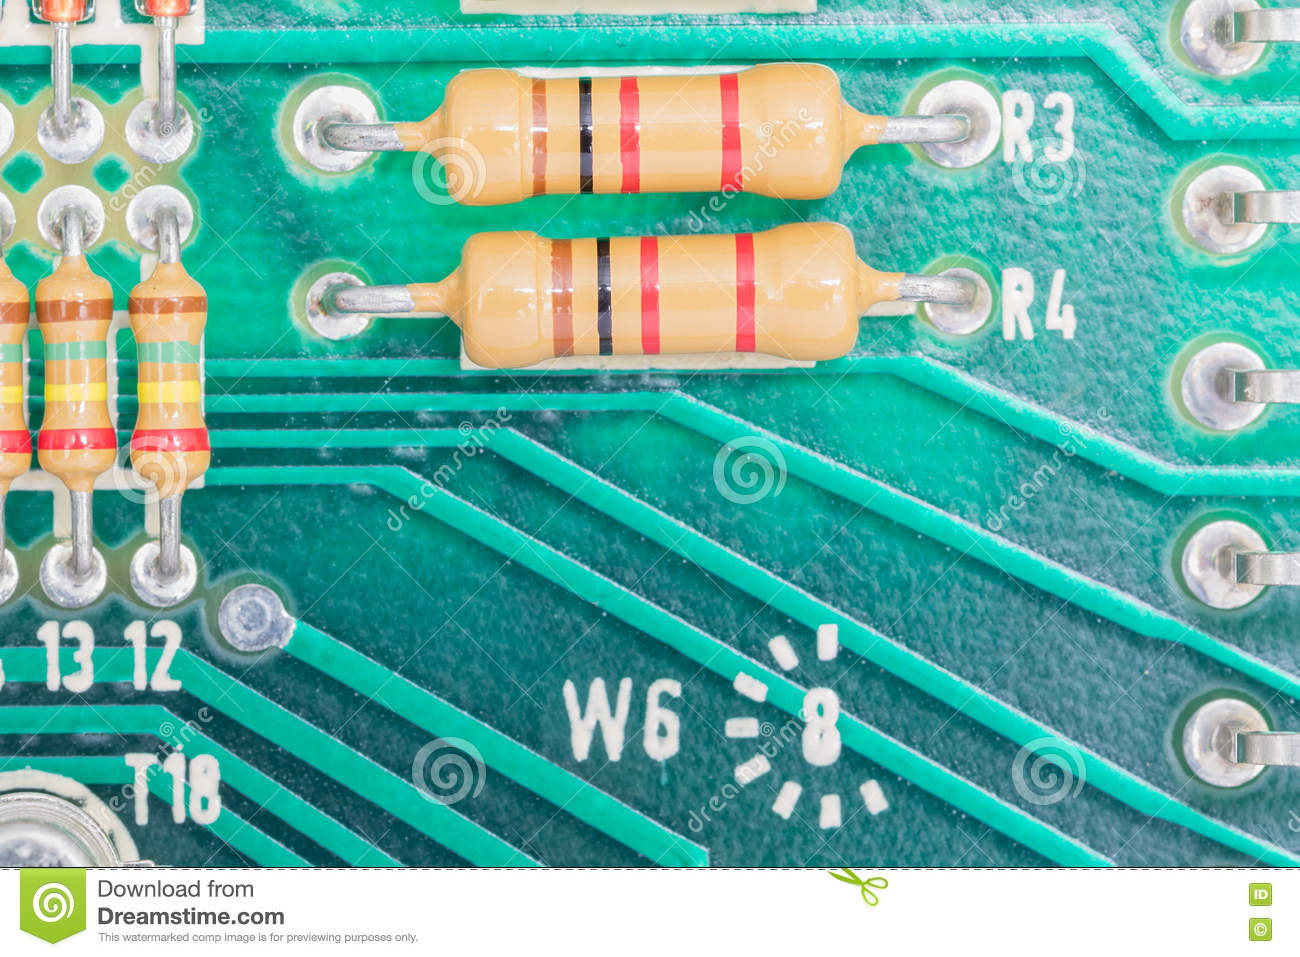 Condensers And Resistor Assembly On The Circuit Board Stock Image Closeup Electronic Hardware